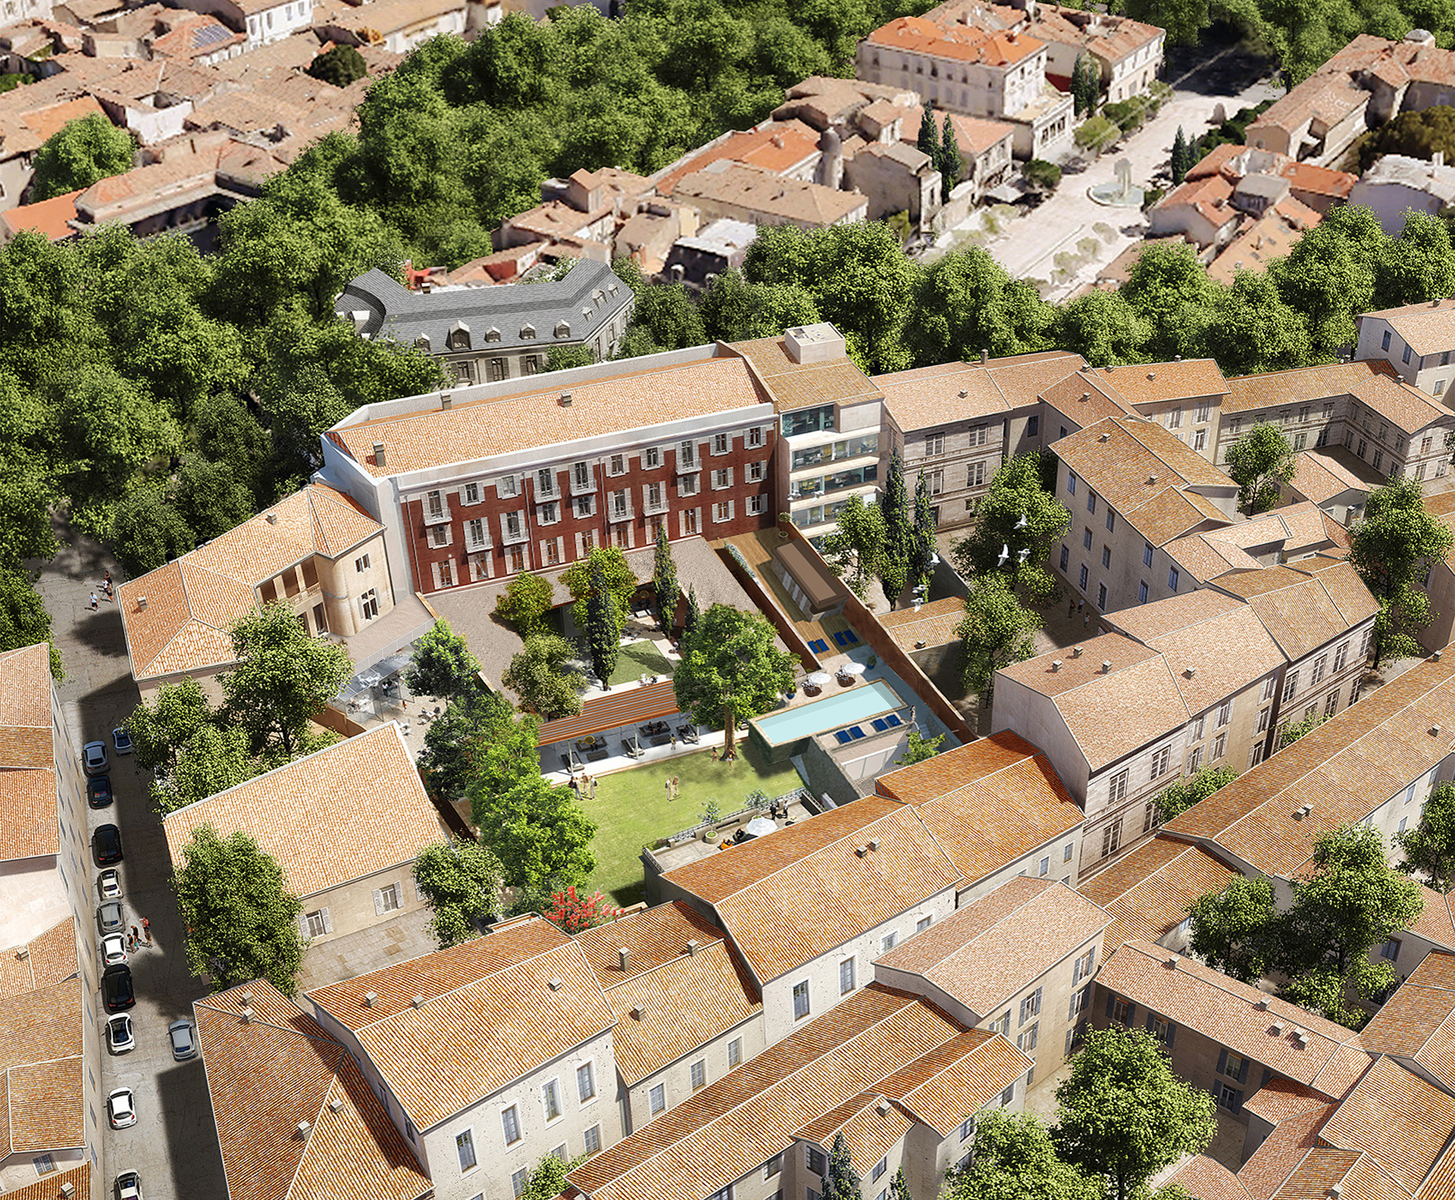 Maison Albar Hotels L'Imperator : aerial view of the hotel